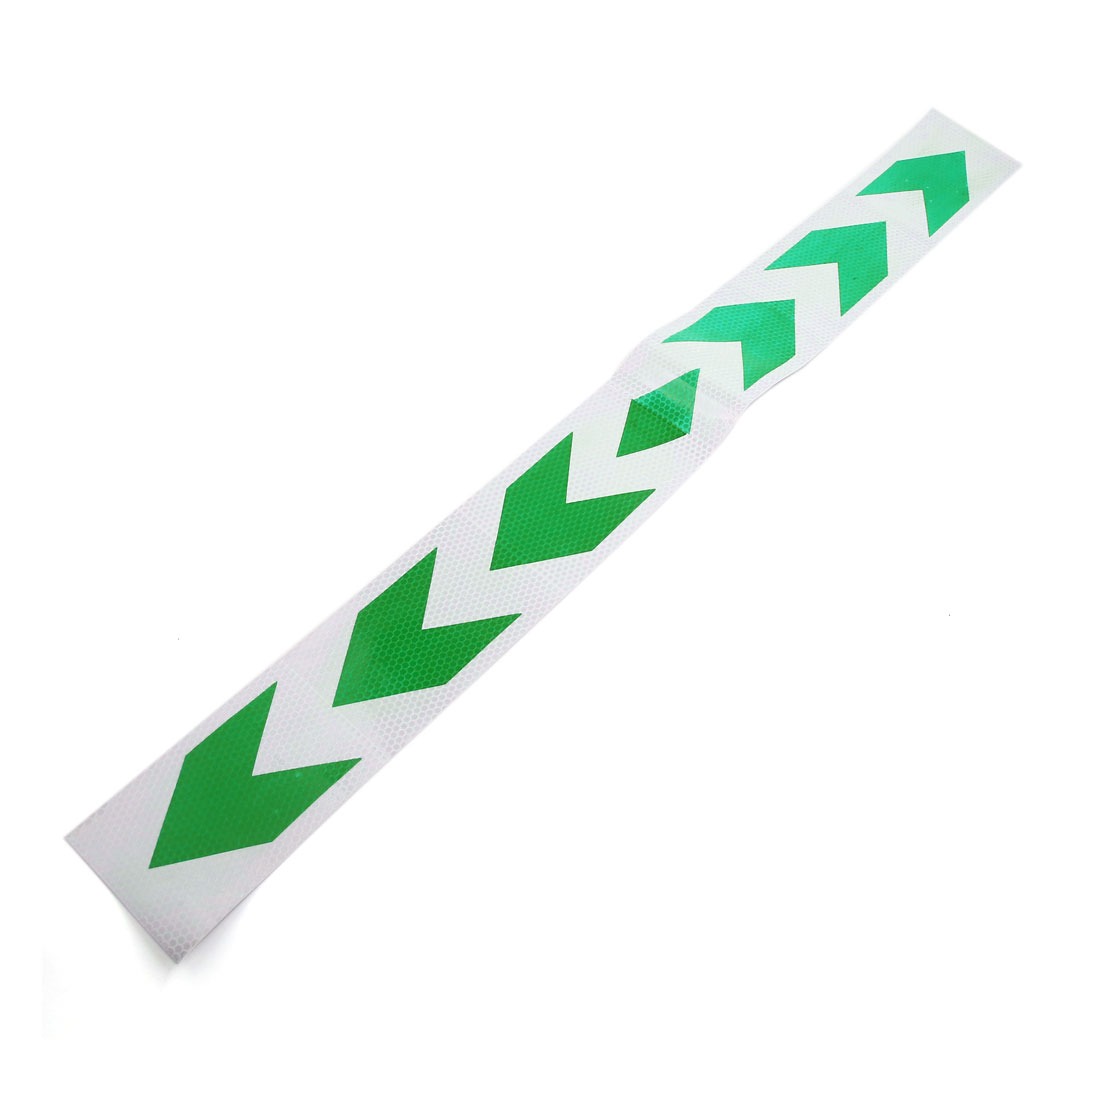 Green White Truck Safety Warning Night Driving Reflective Sticker for Car